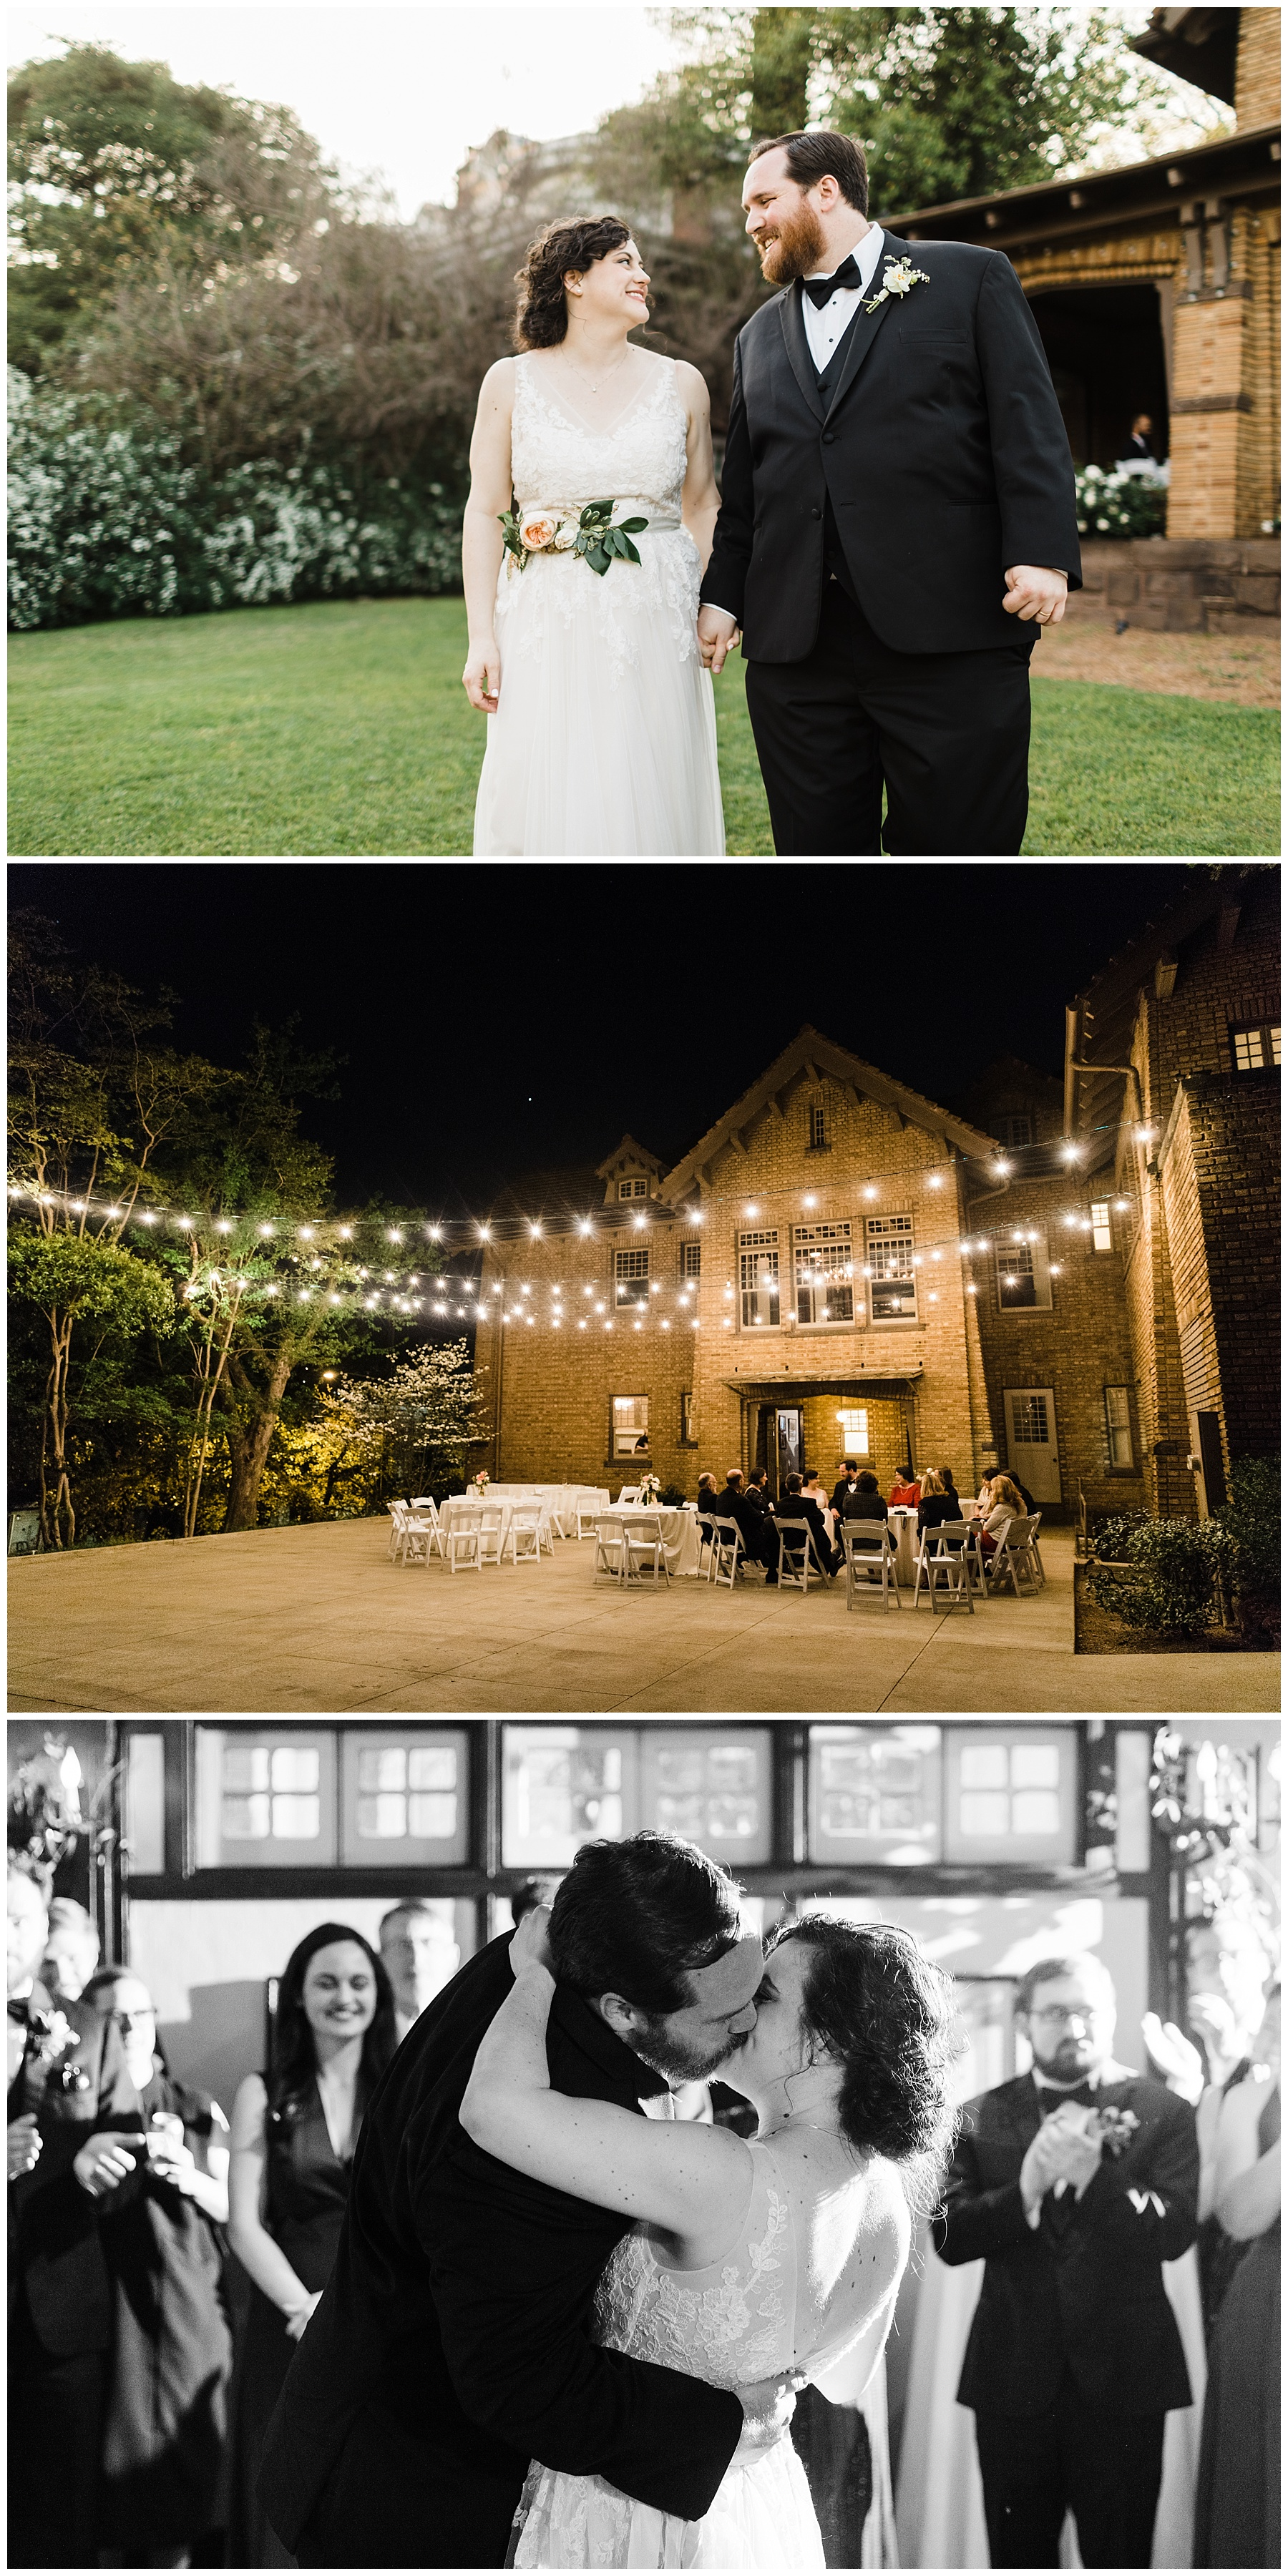 2018-02-27_0009 LeeAnne & William: A Birmingham wedding full of Southern Hospitality Blog Invision Events Weddings    invision_events, birmingham_al, auburn_al, alabama, atlanta_ga, atl, georgia, wedding_planner, wedding_designer, weddings, photography, wedding_planning